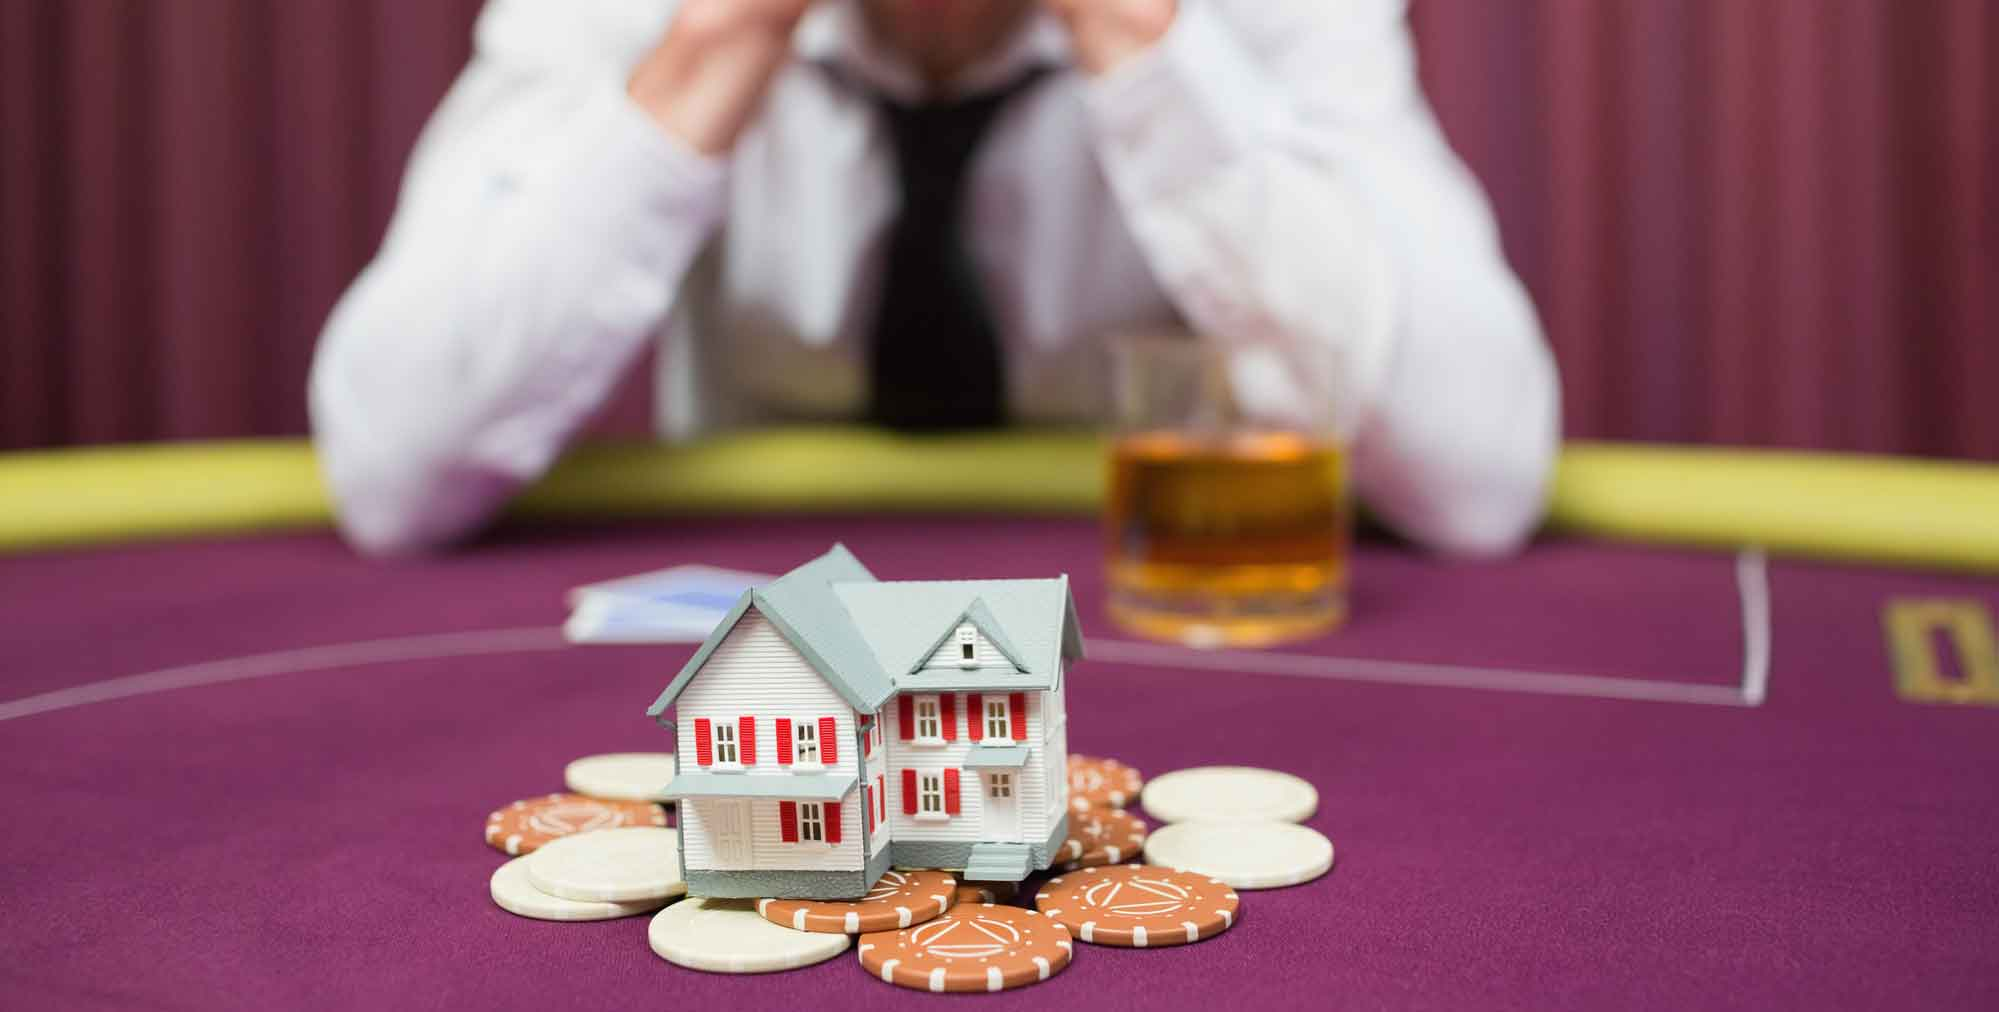 What Do Gambling, Junk Food, Reality TV, Anger and Gossiping All Have in Common?